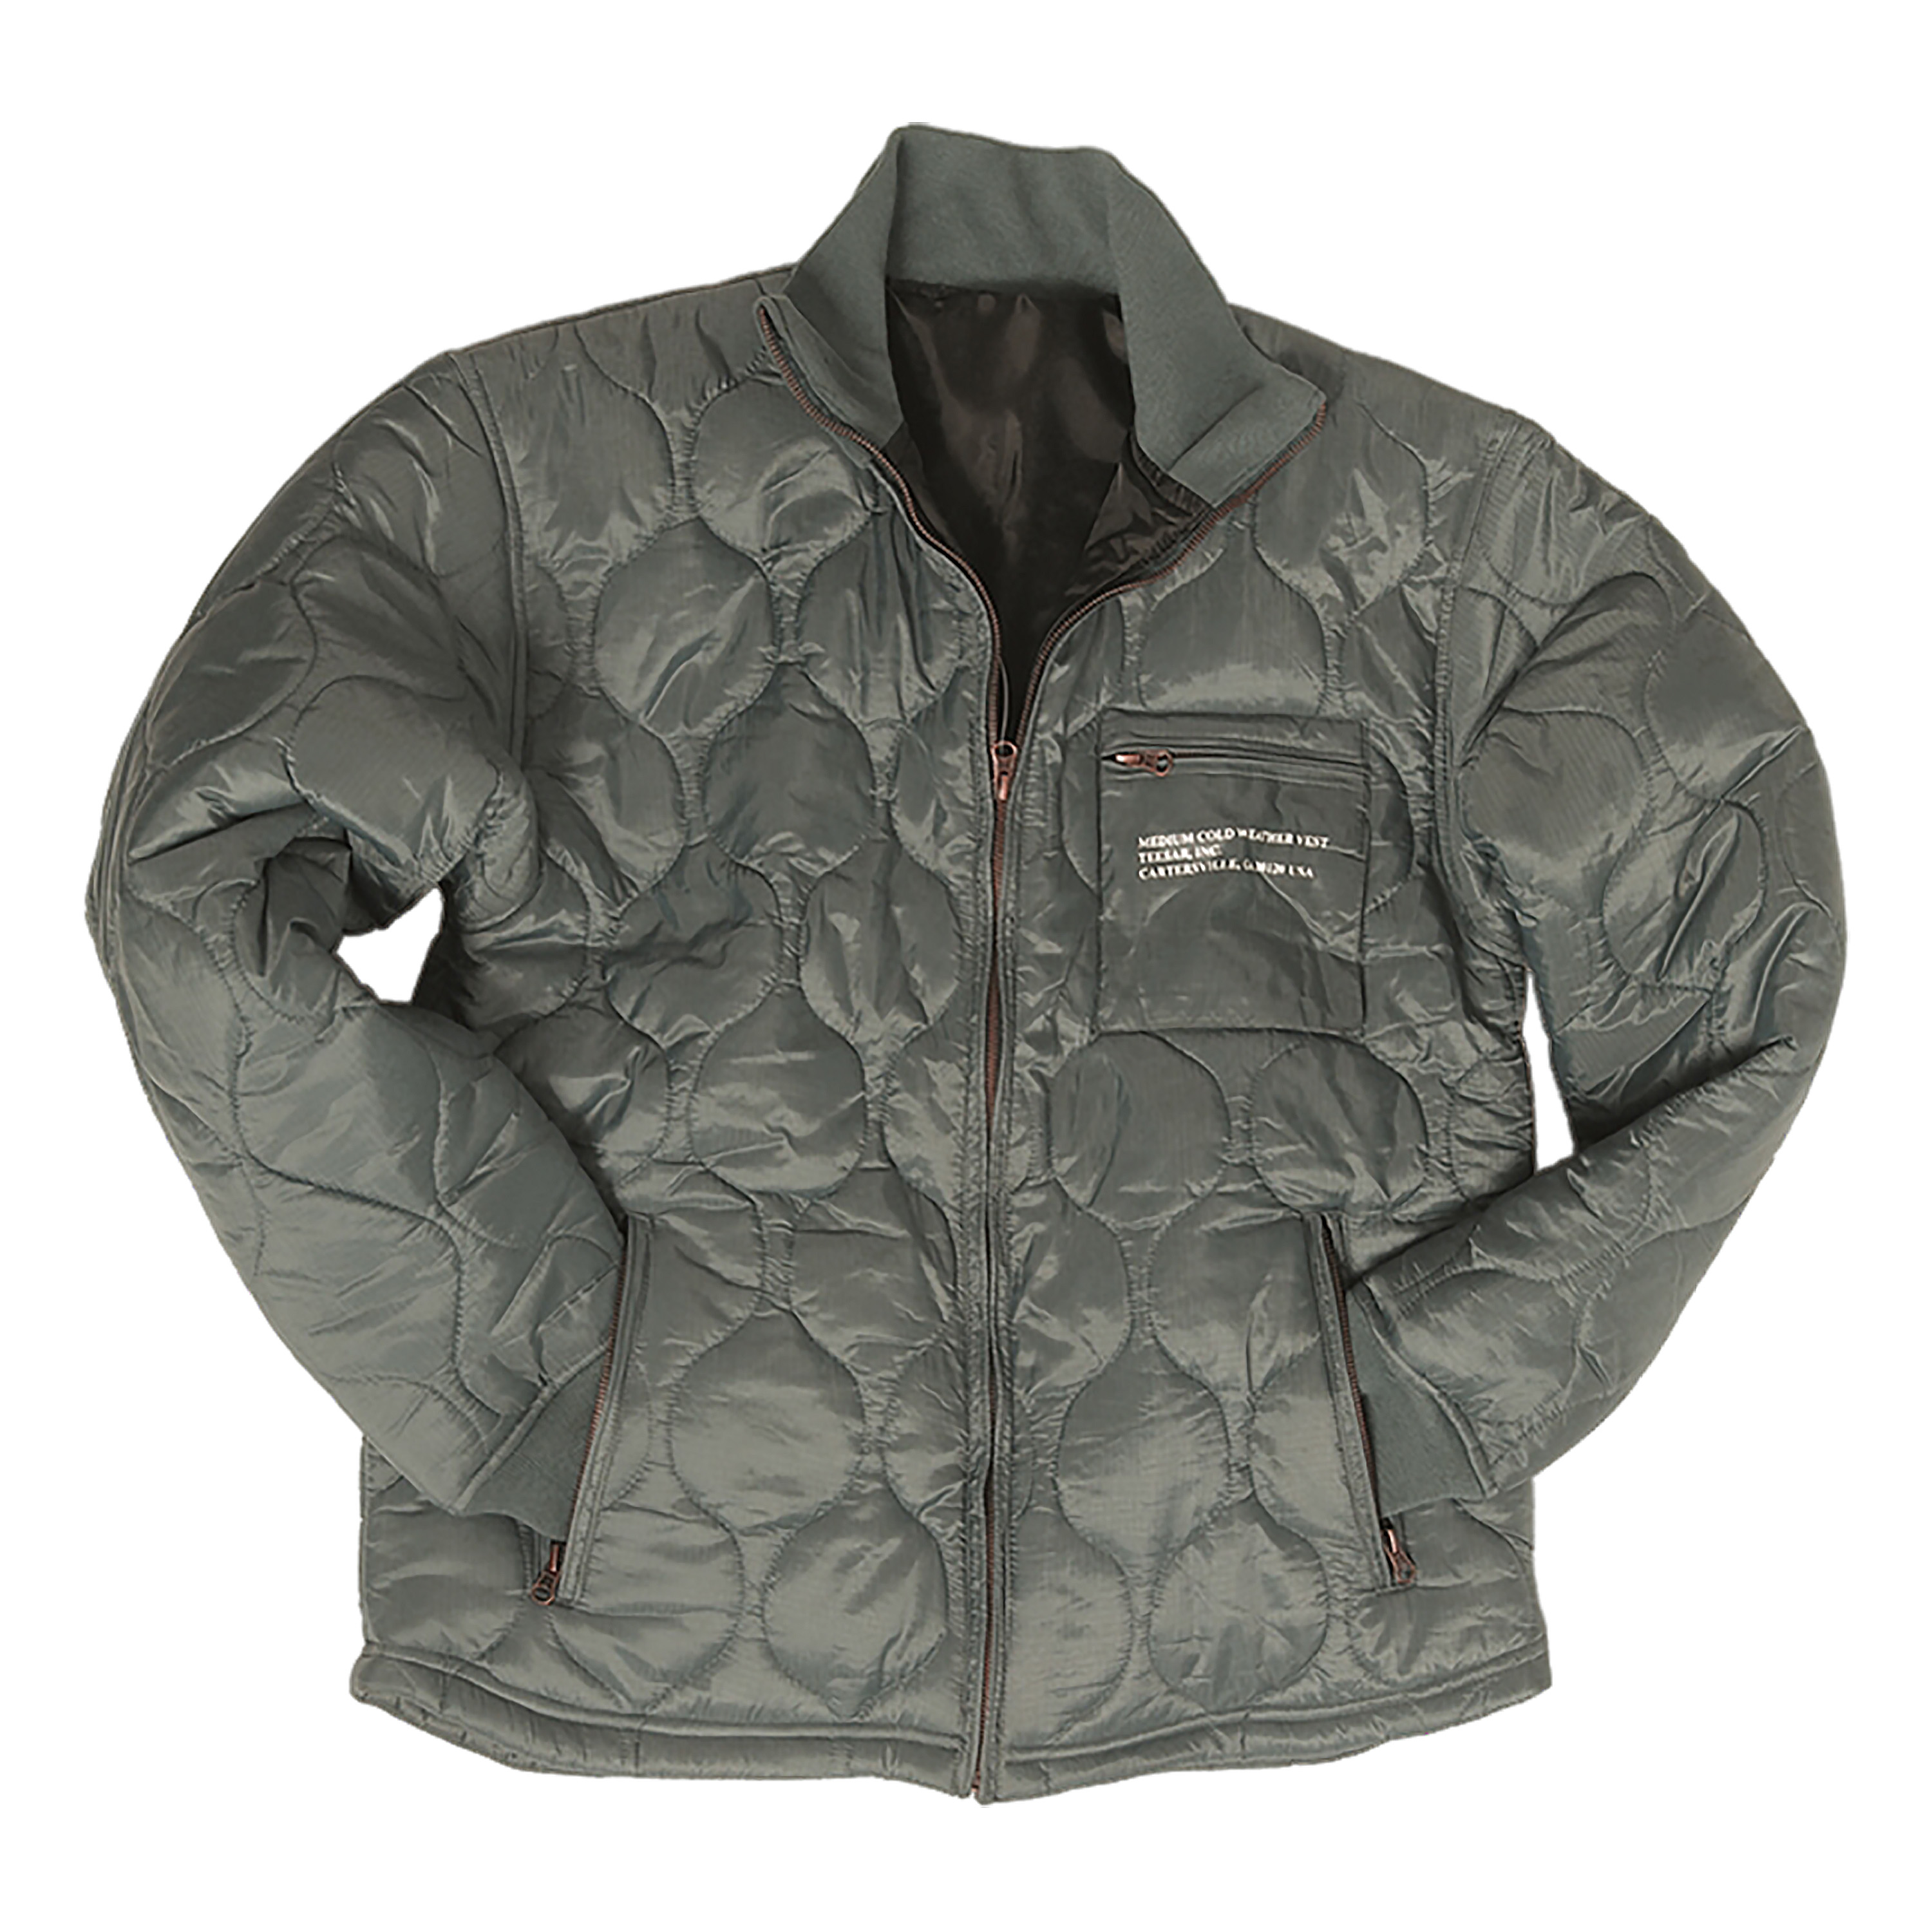 U.S. Cold Weather Quilted Jacket foliage